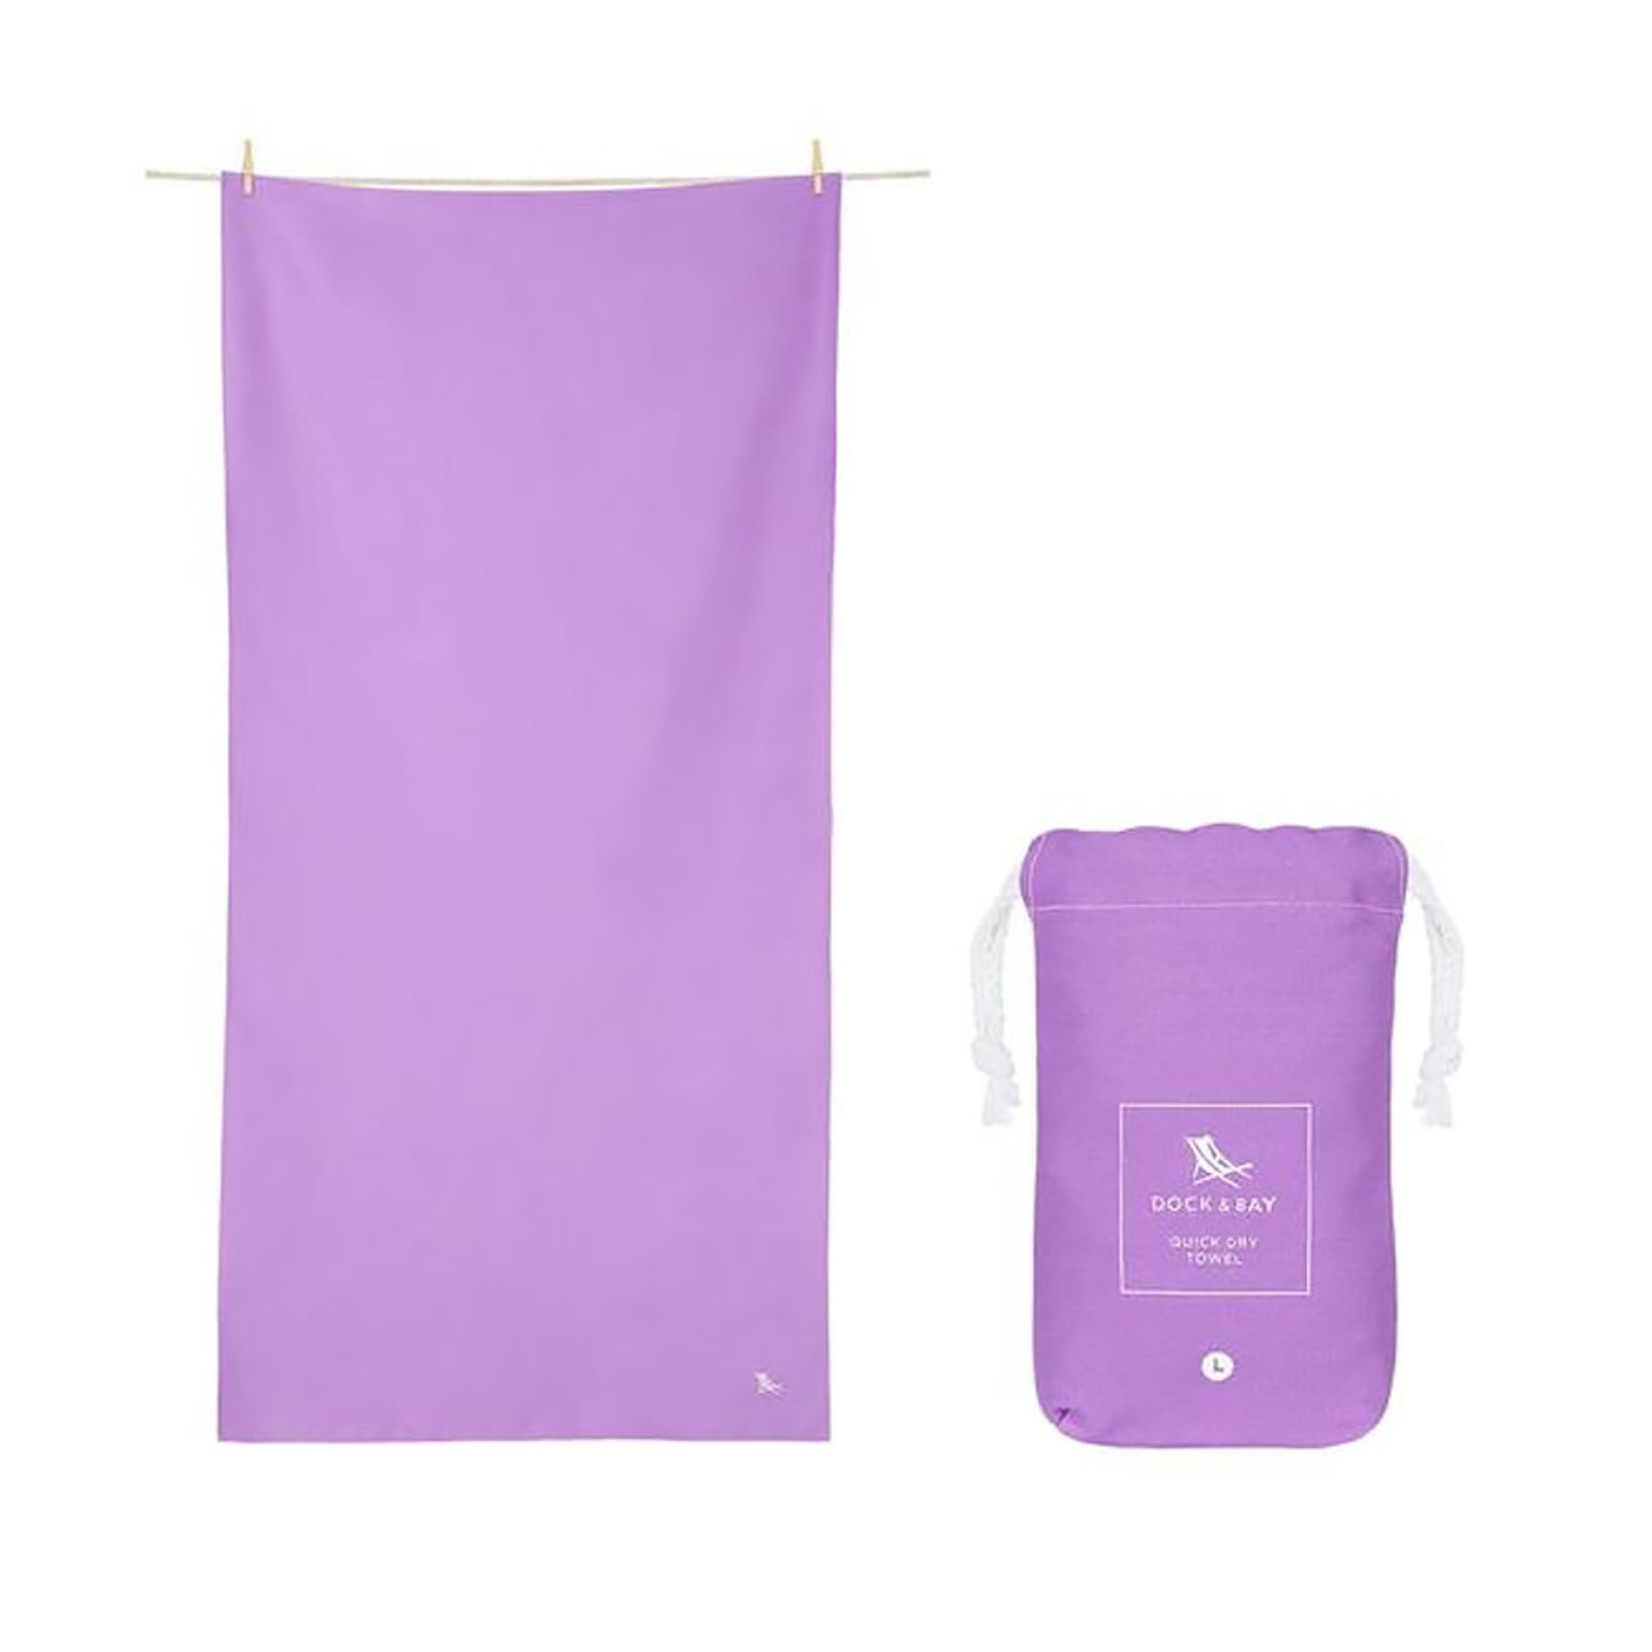 Dock & Bay Quick Dry Towel Classic Collection